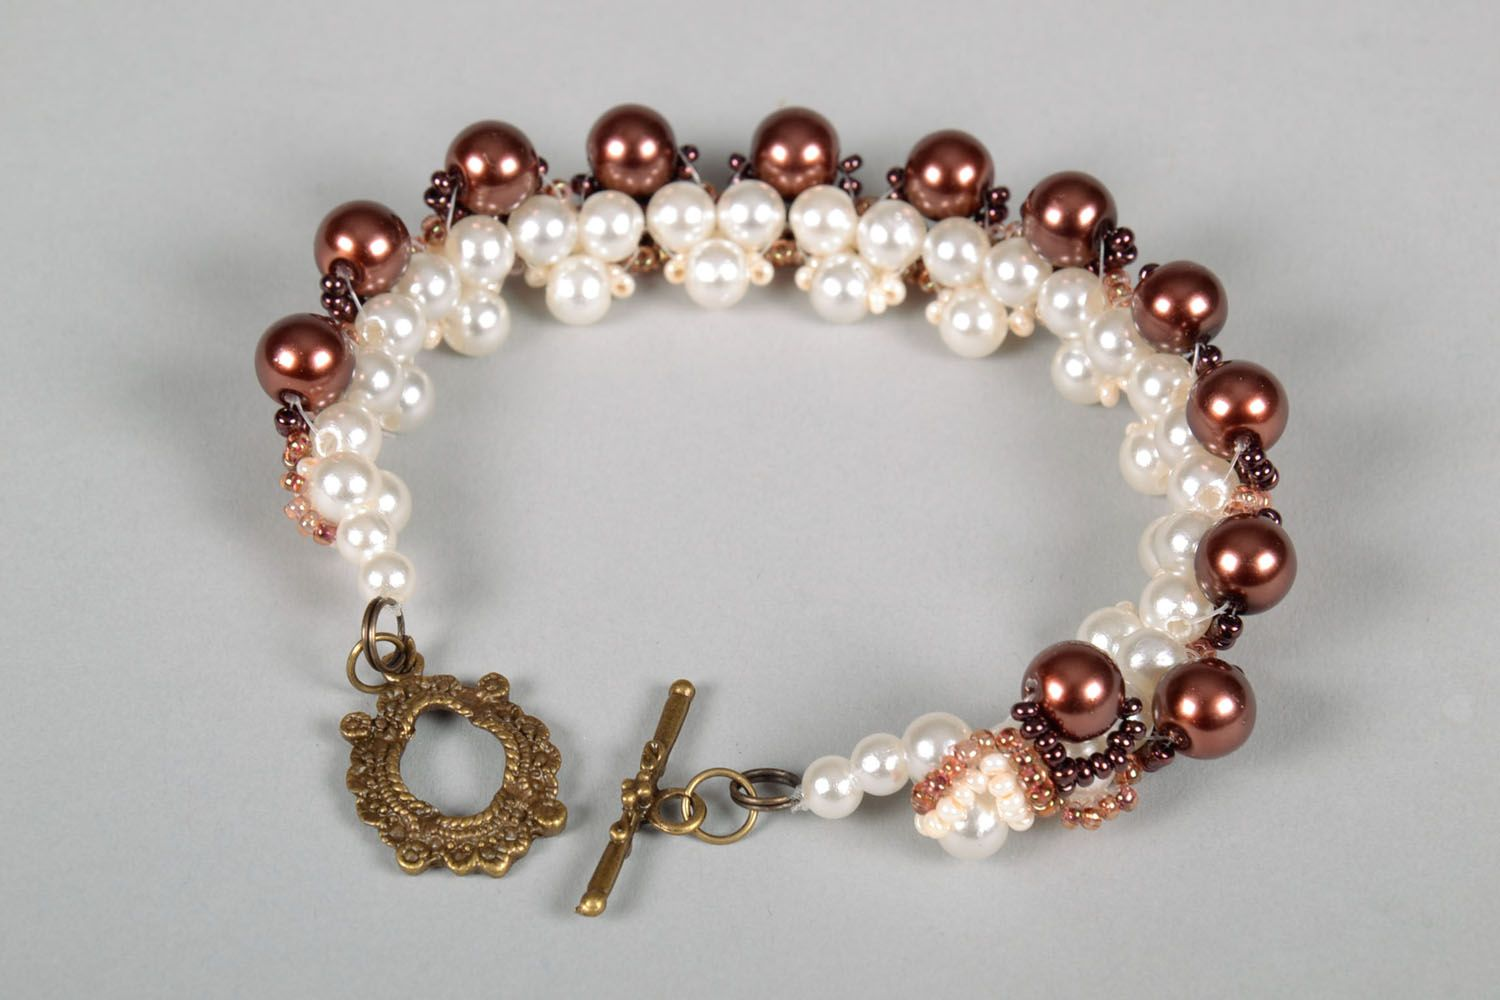 Bracelet with artificial pearls photo 3